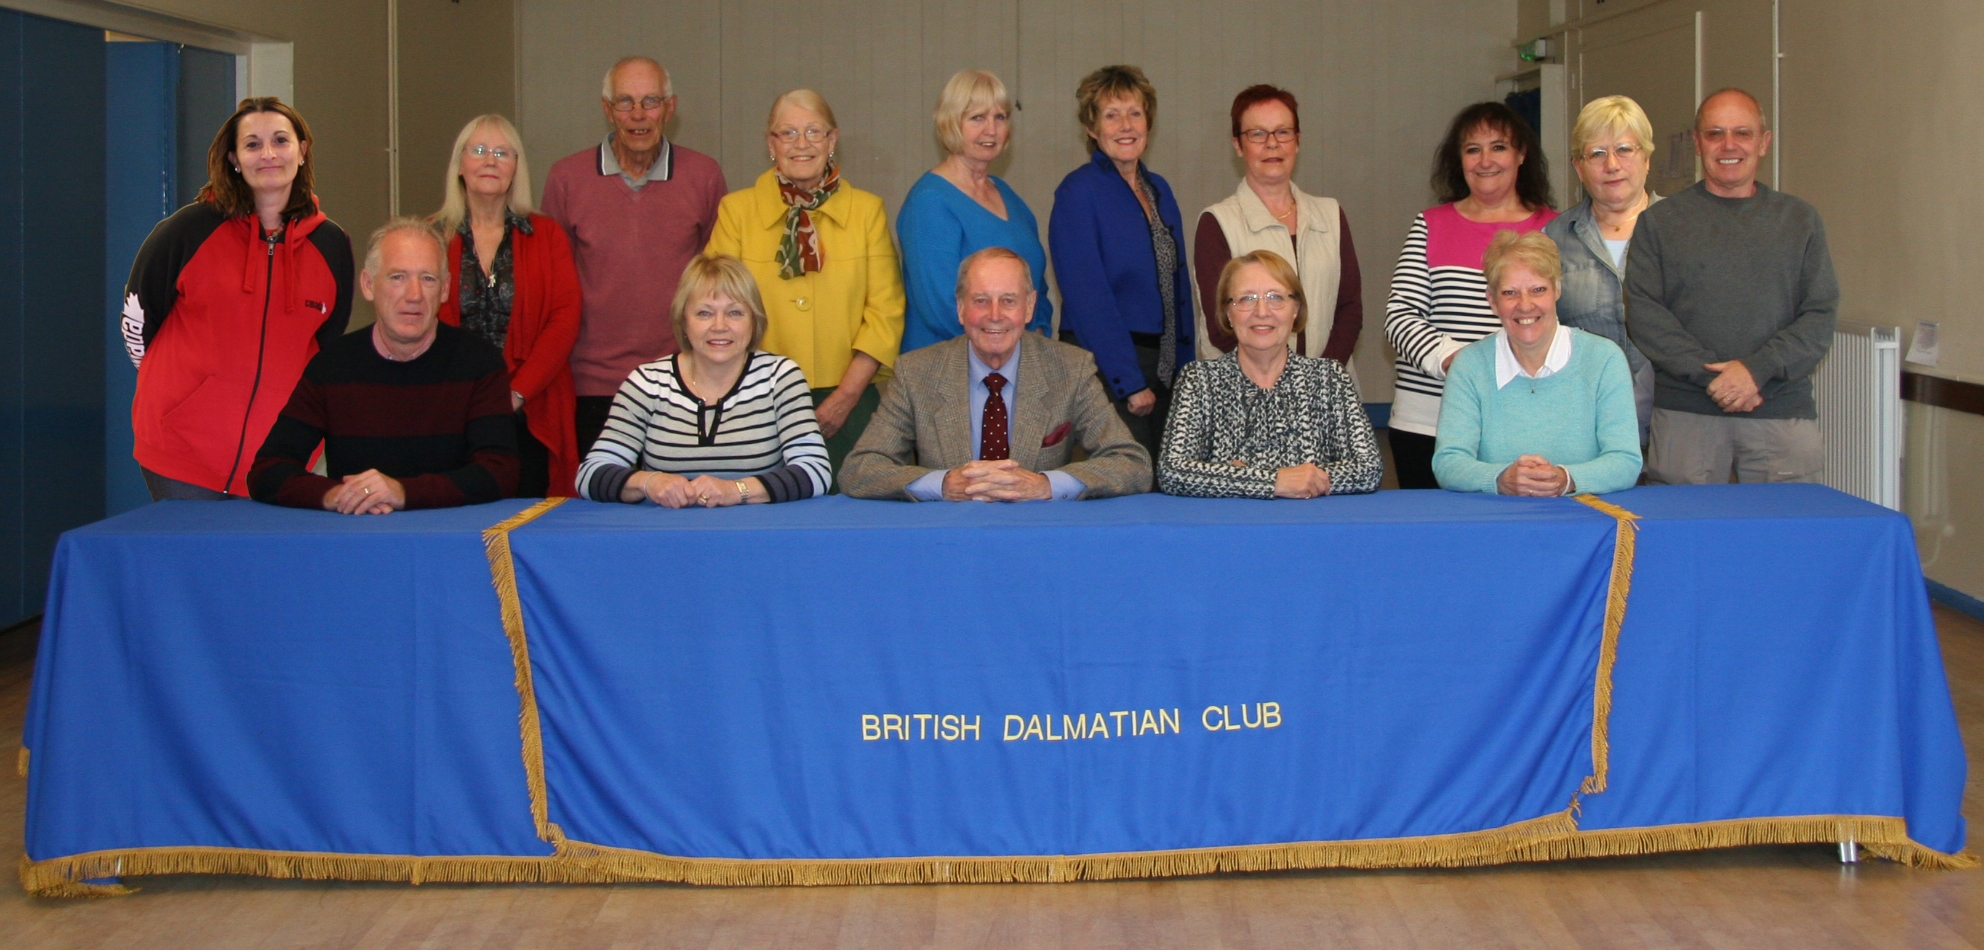 British Dalmatian Club Committee